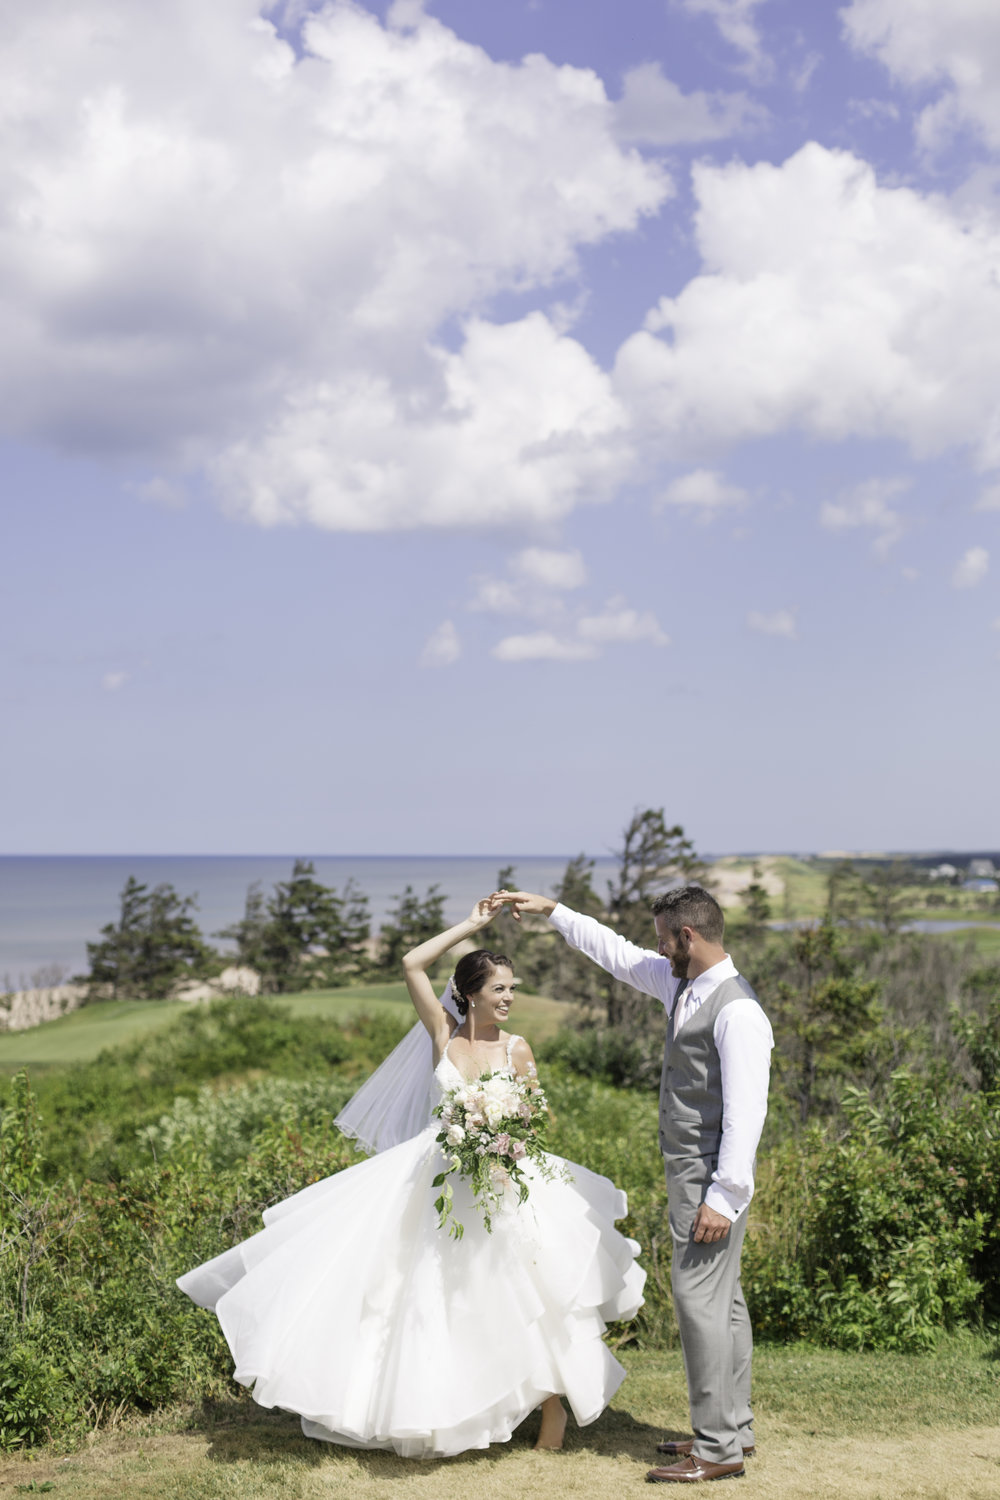 Nicole Anne Photography, Island Meadow Farms, Brittany Bruinooge/Wave Hair Studio